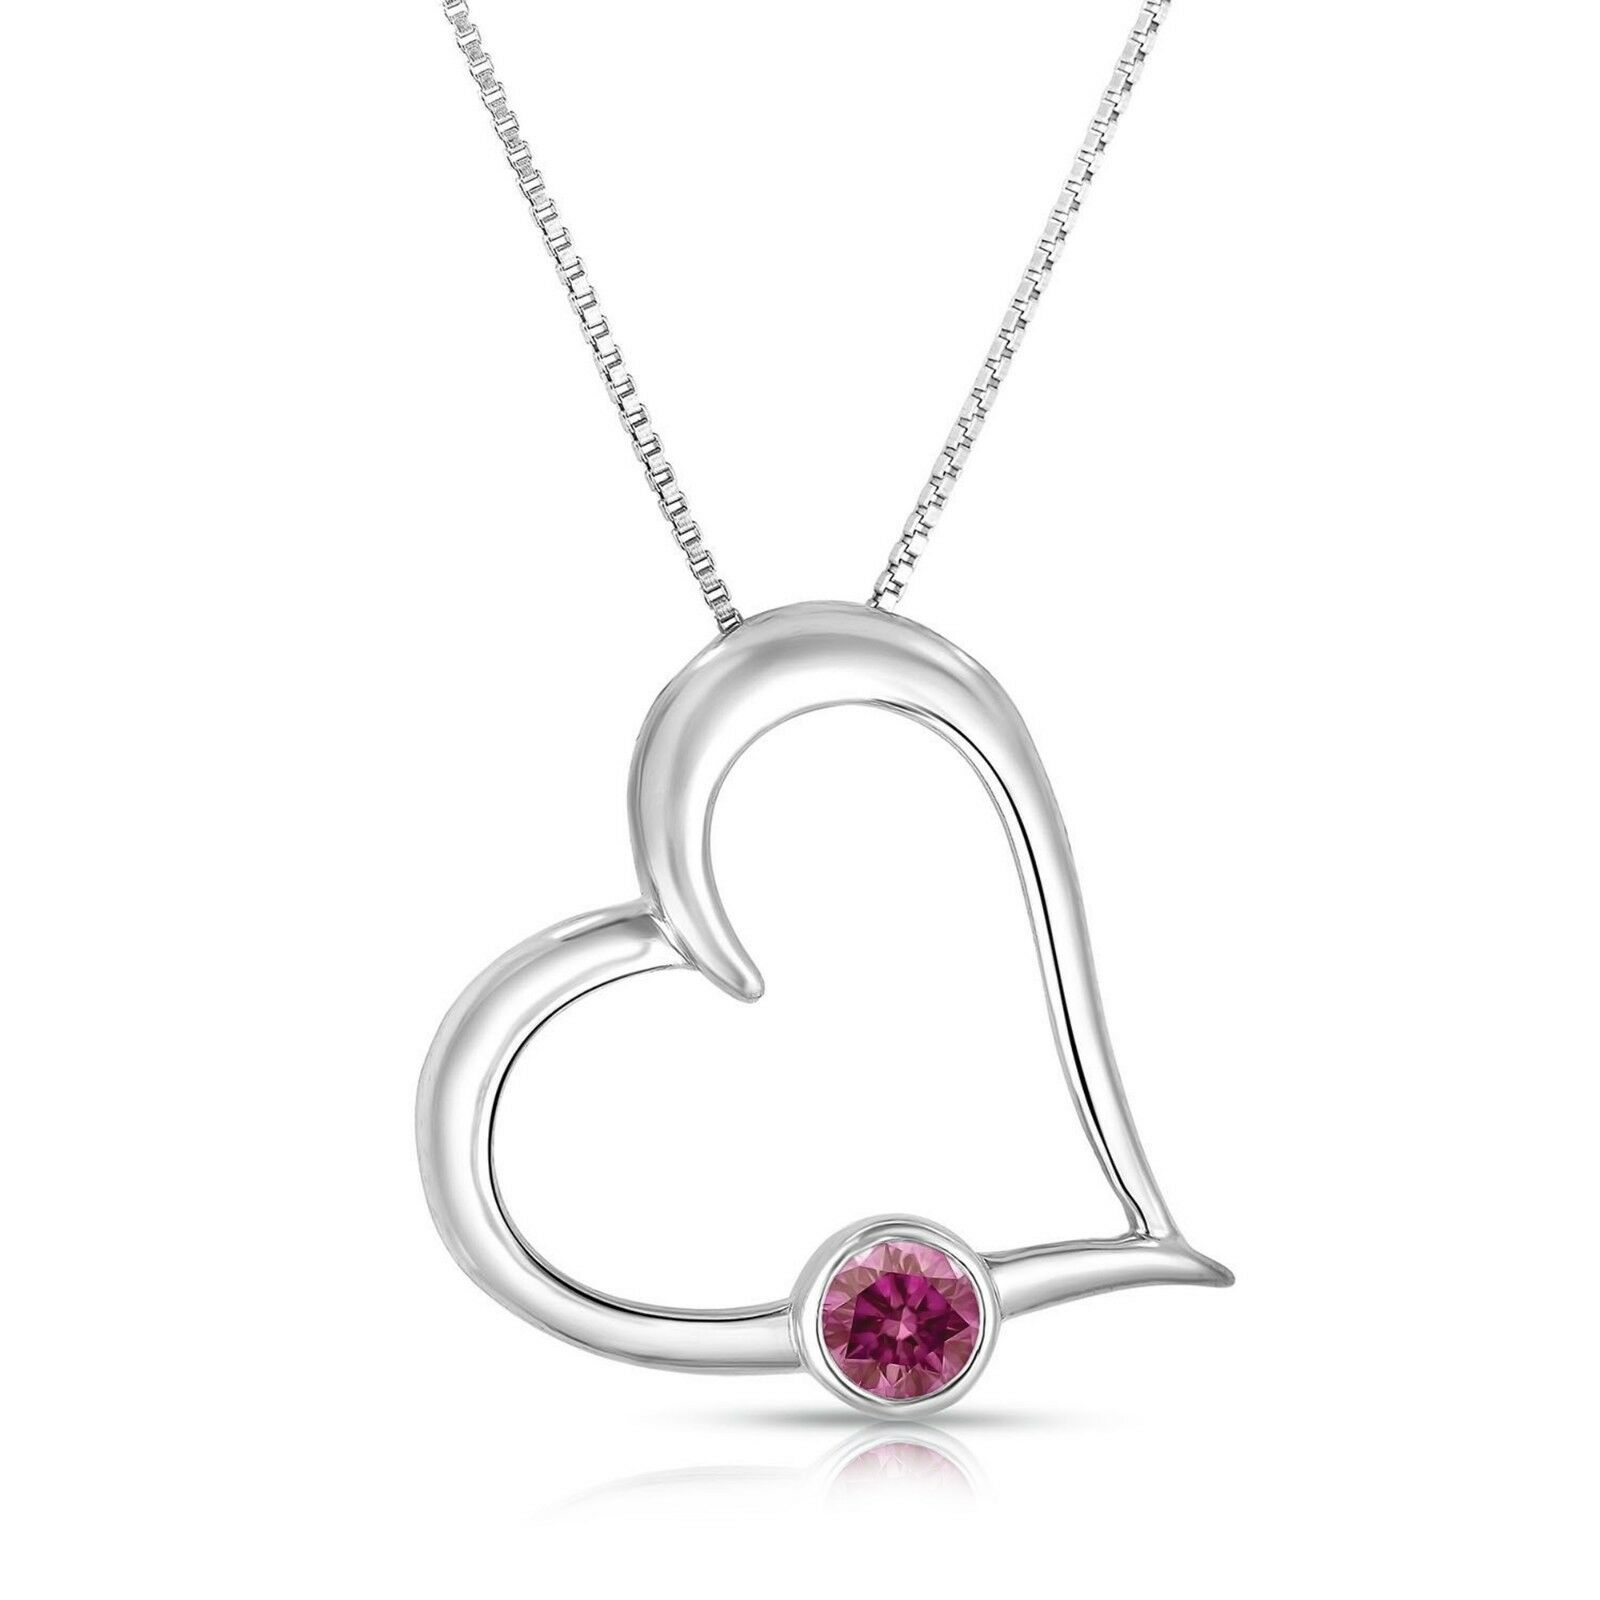 0.25 Ct Pink Solitaire Diamond Heart Shape Pendant 14k WG Valentineday Spl.Sale